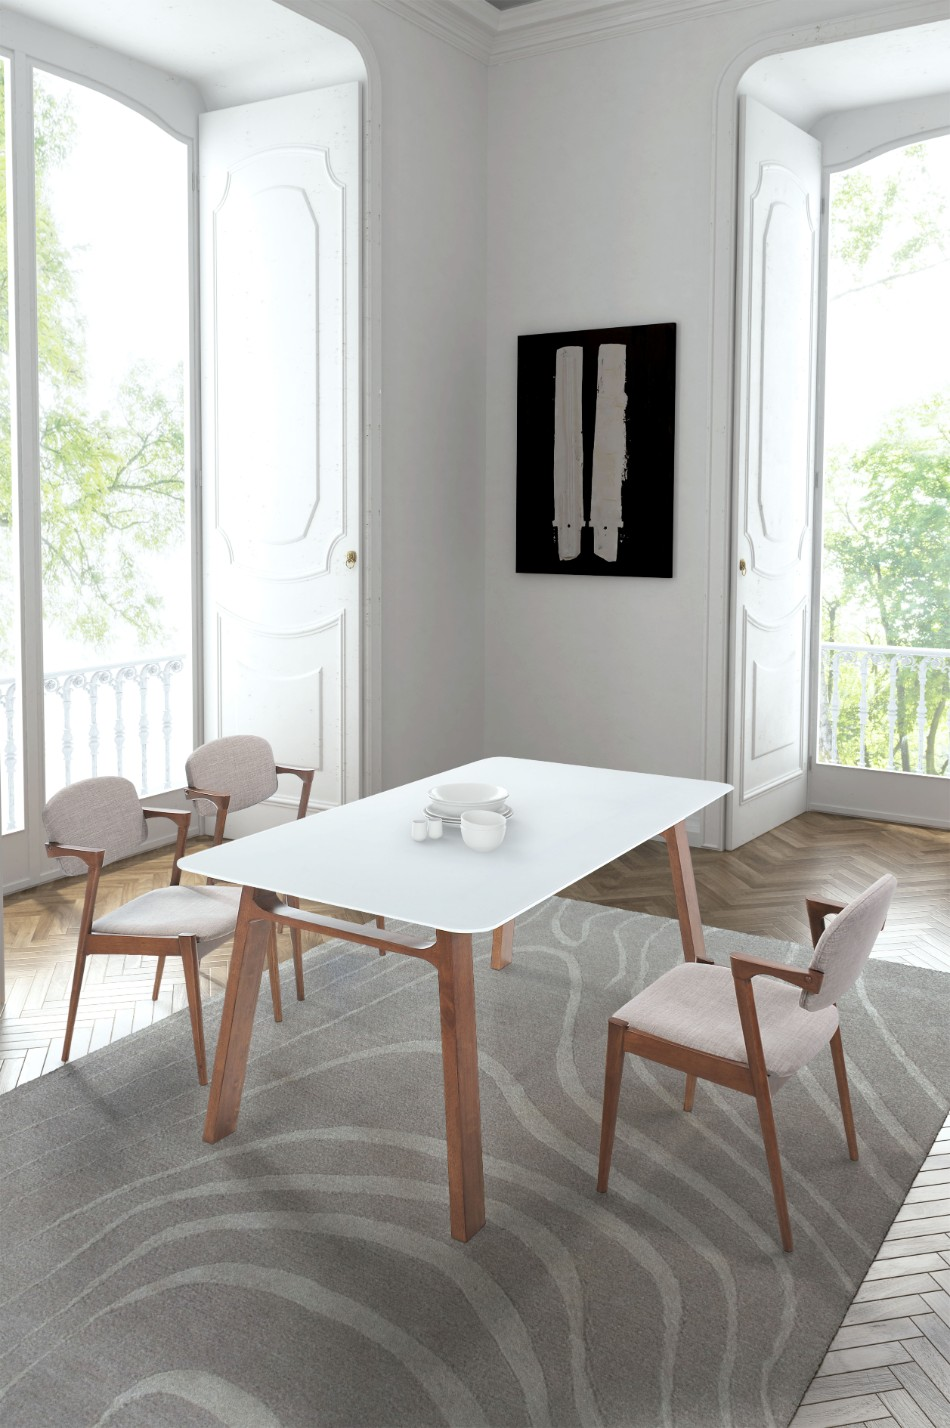 10 Exhibitors You Can't Miss At ICFF Miami | www.bocadolobo.com #miami #diningroom #thediningroom #moderndiningtables #diningtables #diningareas #designfest #miamidesignfestival #luxurybrands #fendicasa #fendi @moderndiningtables icff 10 Exhibitors You Can't Miss At ICFF Miami 10 Exhibitors You Can   t Miss At ICFF Miami 14